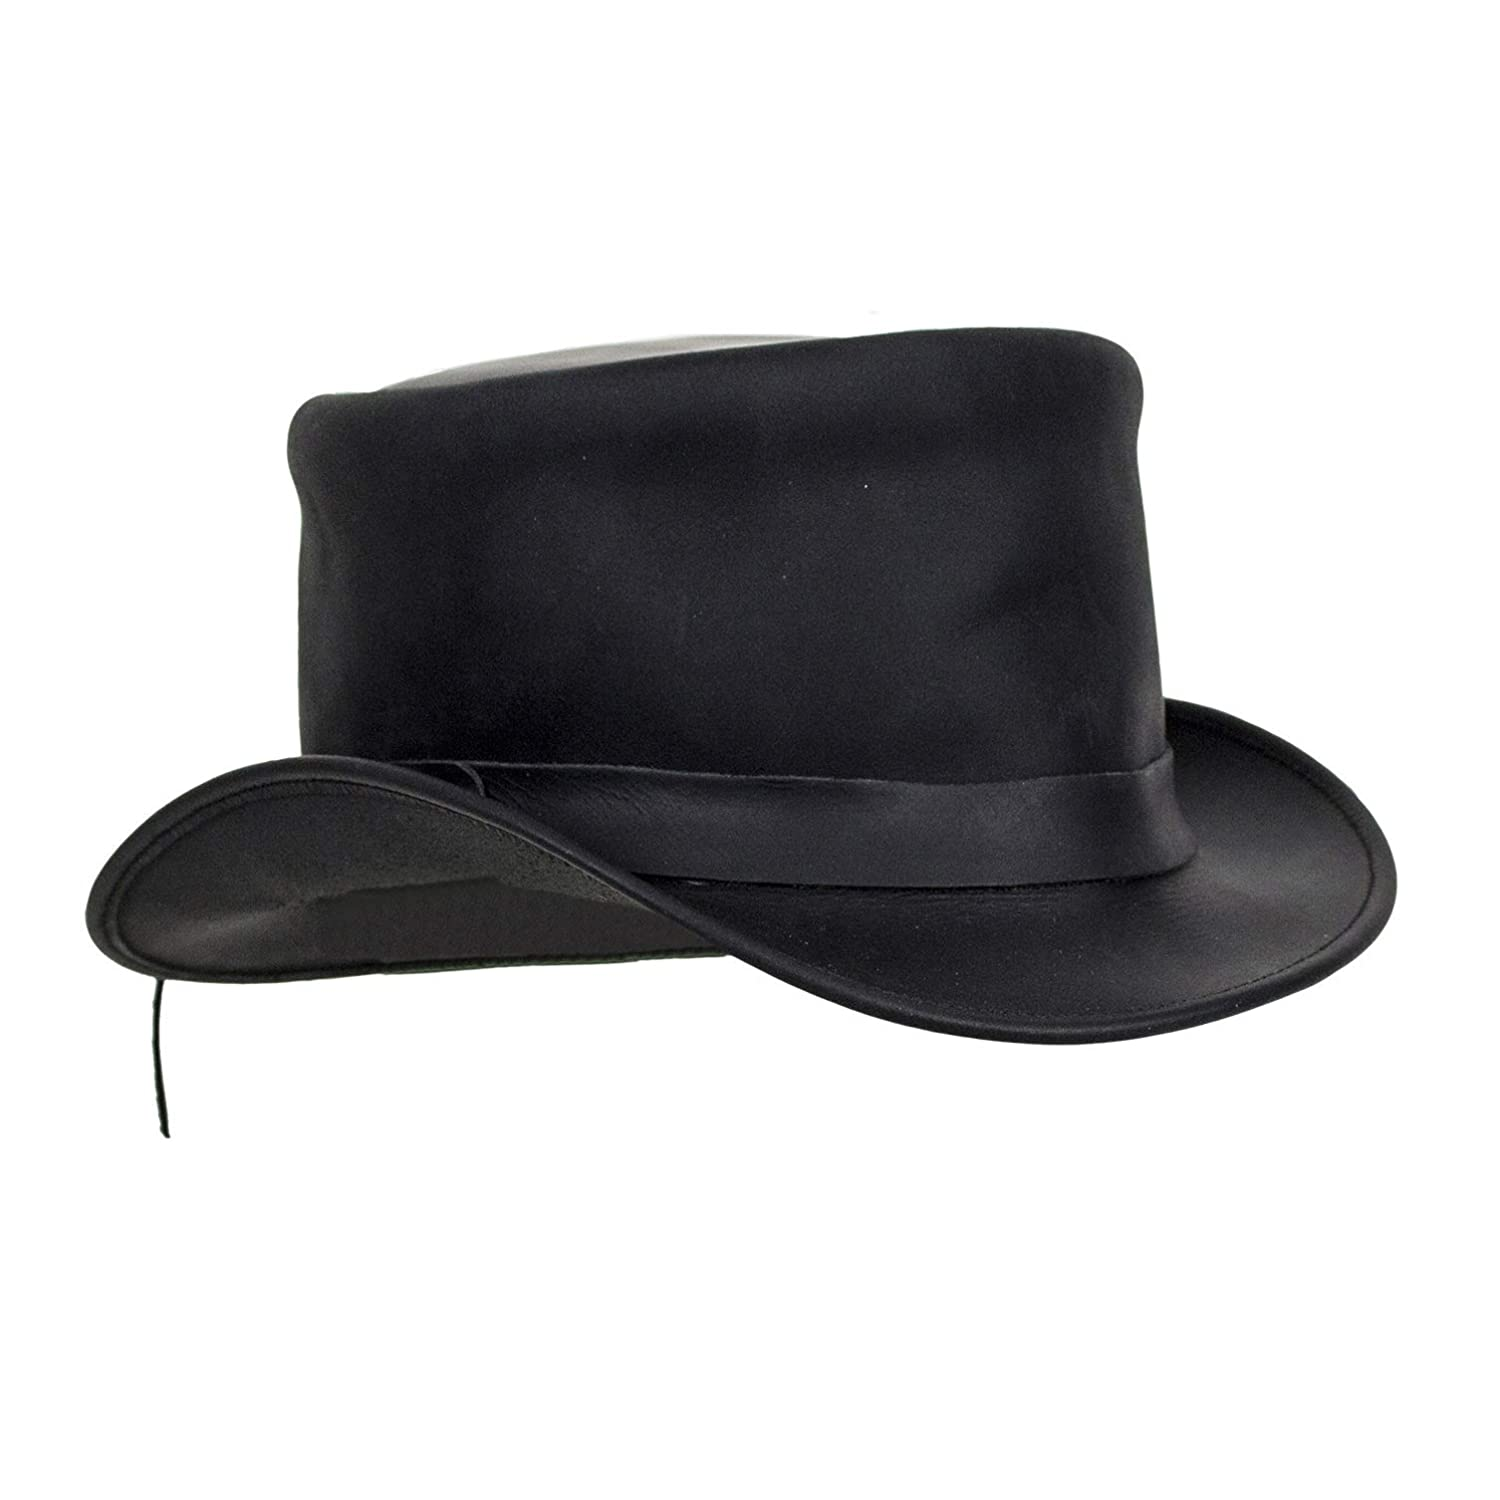 Men's Victorian Costume and Clothing Guide Black Leather Deadman Top Hat $69.00 AT vintagedancer.com